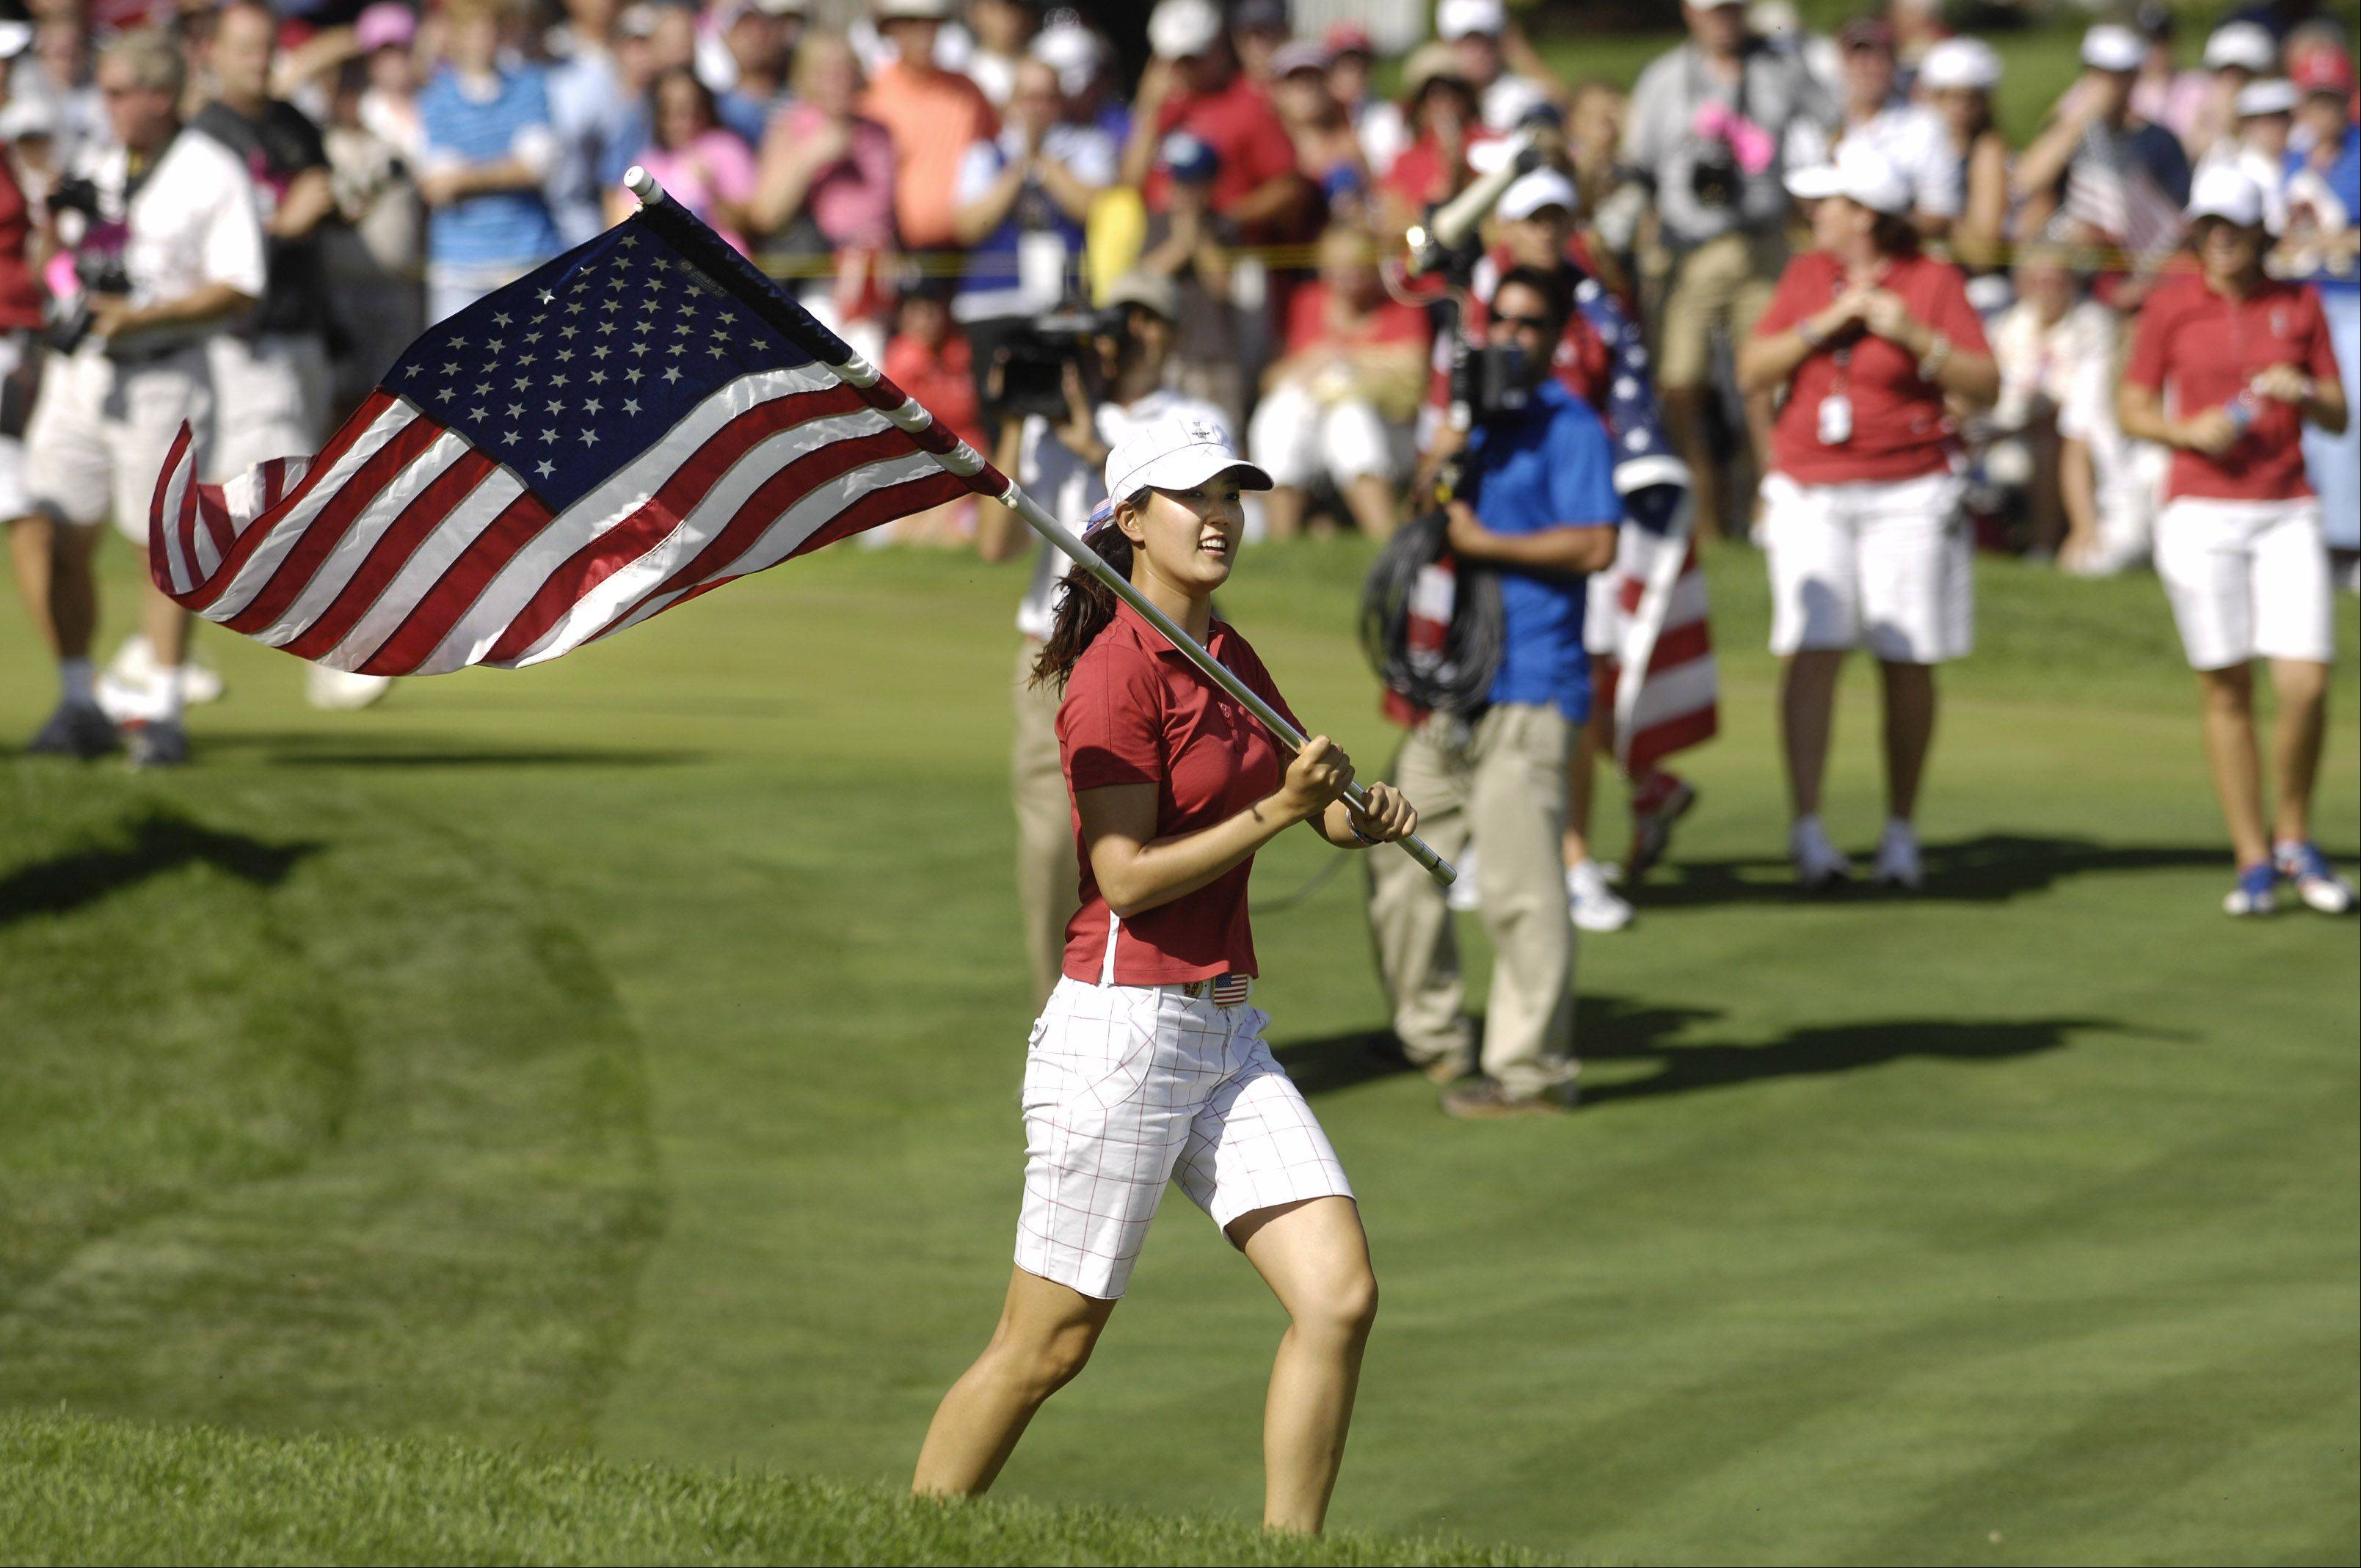 Michelle Wie waves an American Flag after Team USA defeated Europe at the final round of the Solheim Cup in Sugar Grove in 2009. The Solheim Cup drew more than 120,000 fans to the biennial competition.